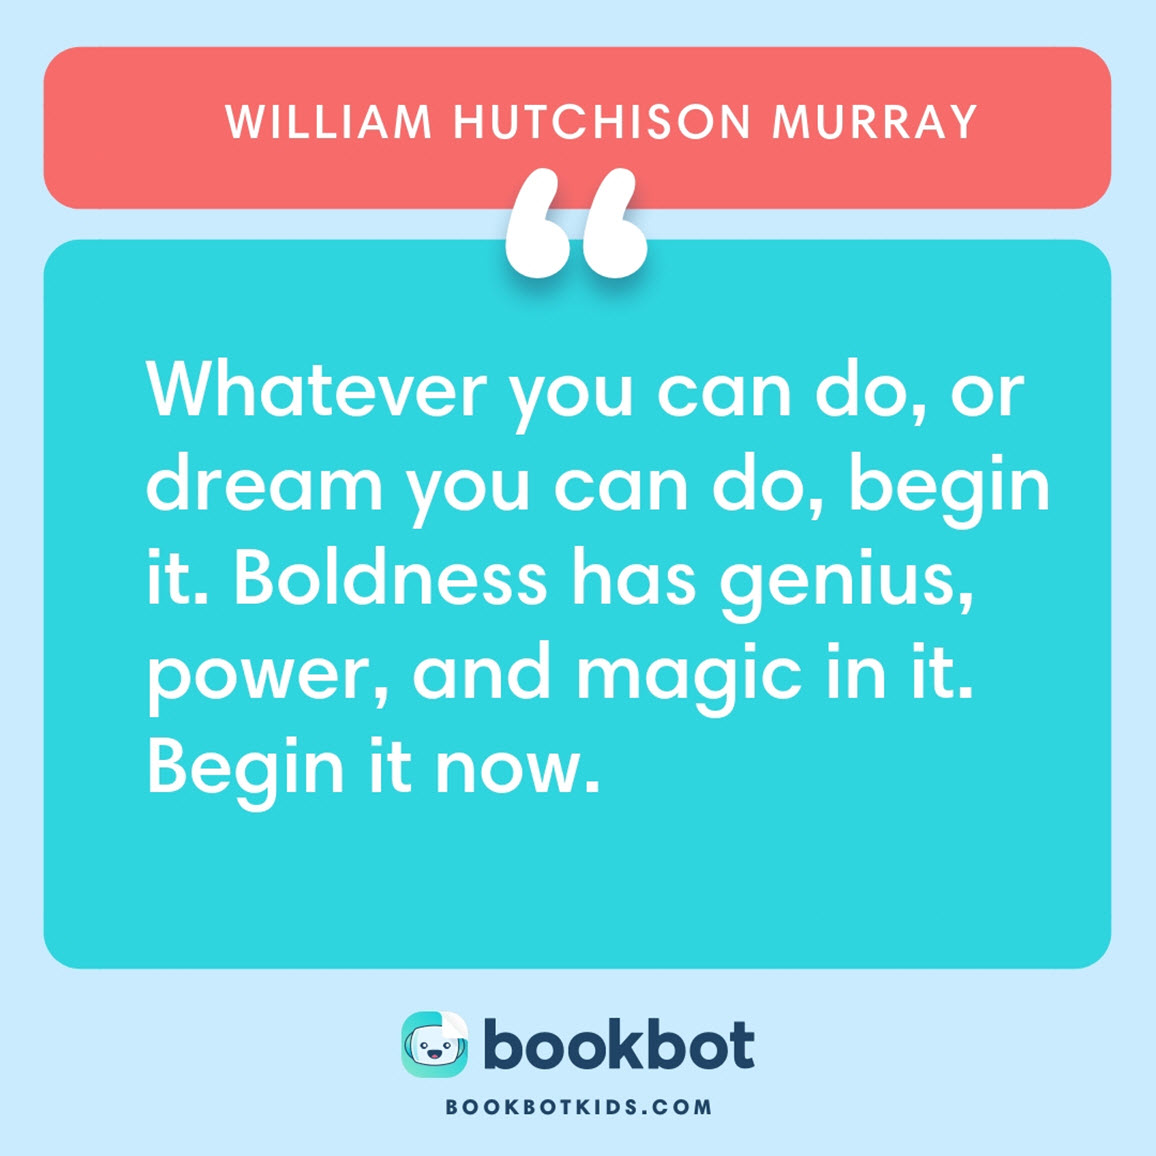 Whatever you can do, or dream you can do, begin it. Boldness has genius, power, and magic in it. Begin it now. – William Hutchison Murray